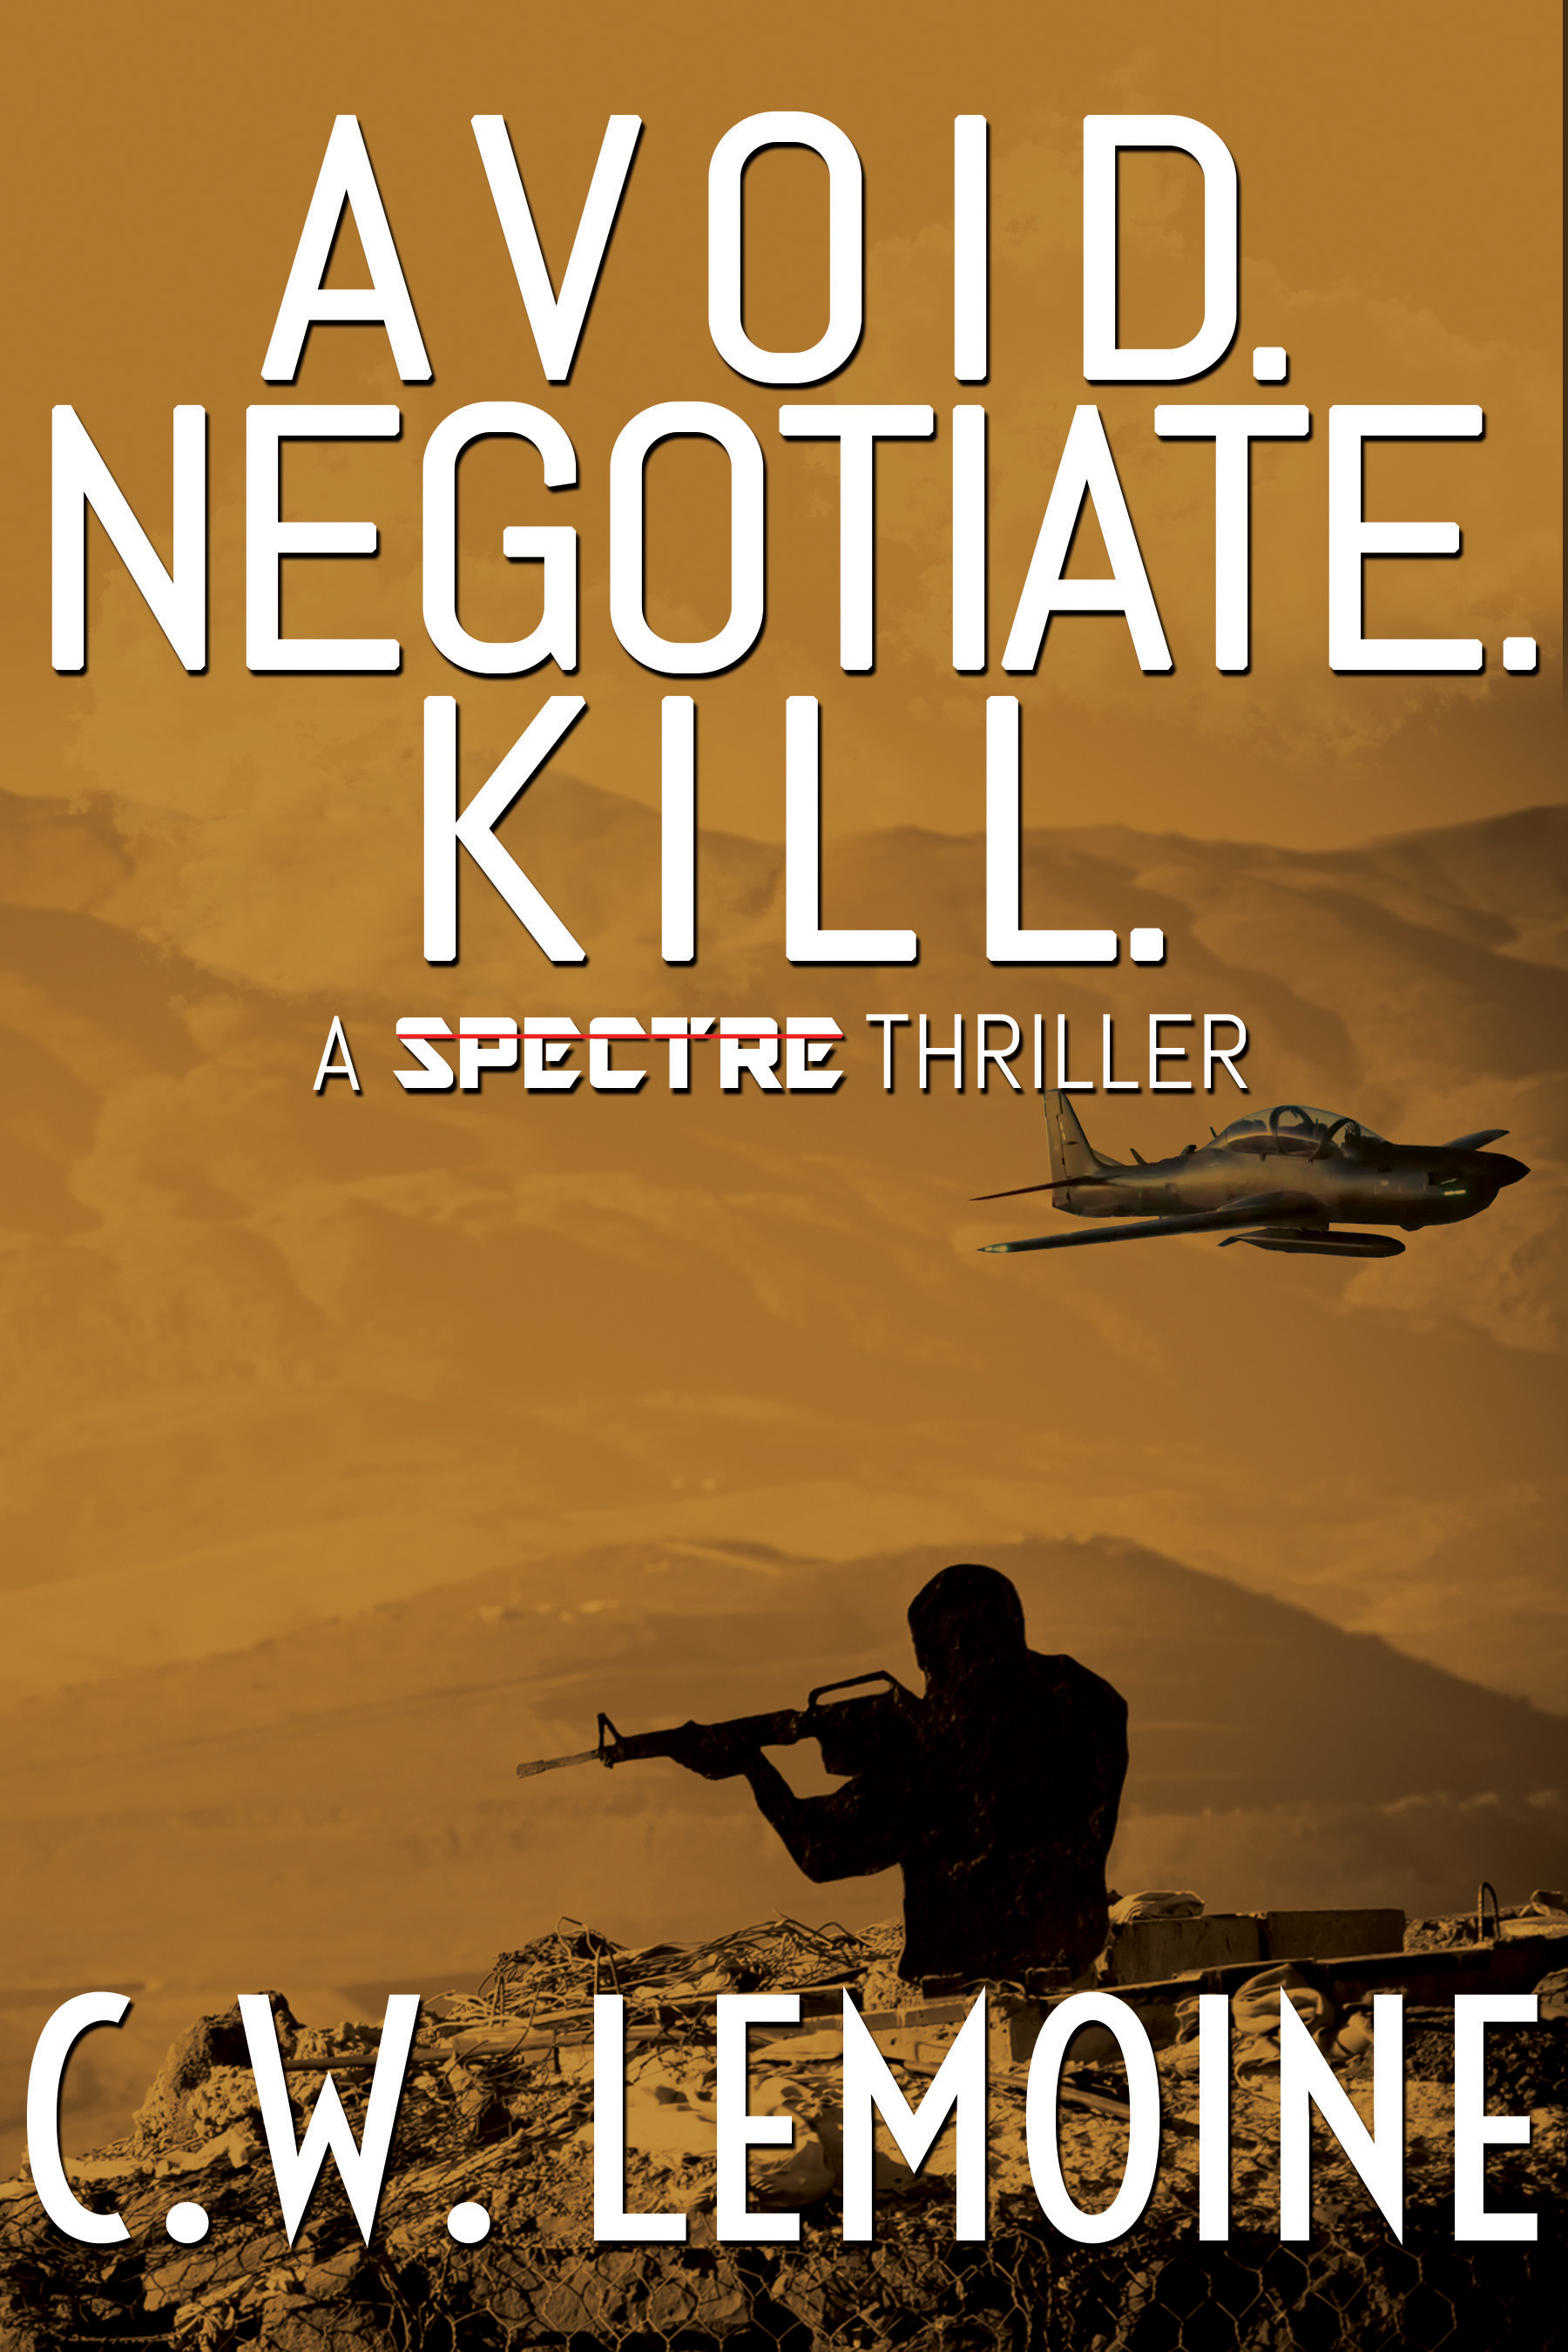 Avoid. Negotiation. Kill.